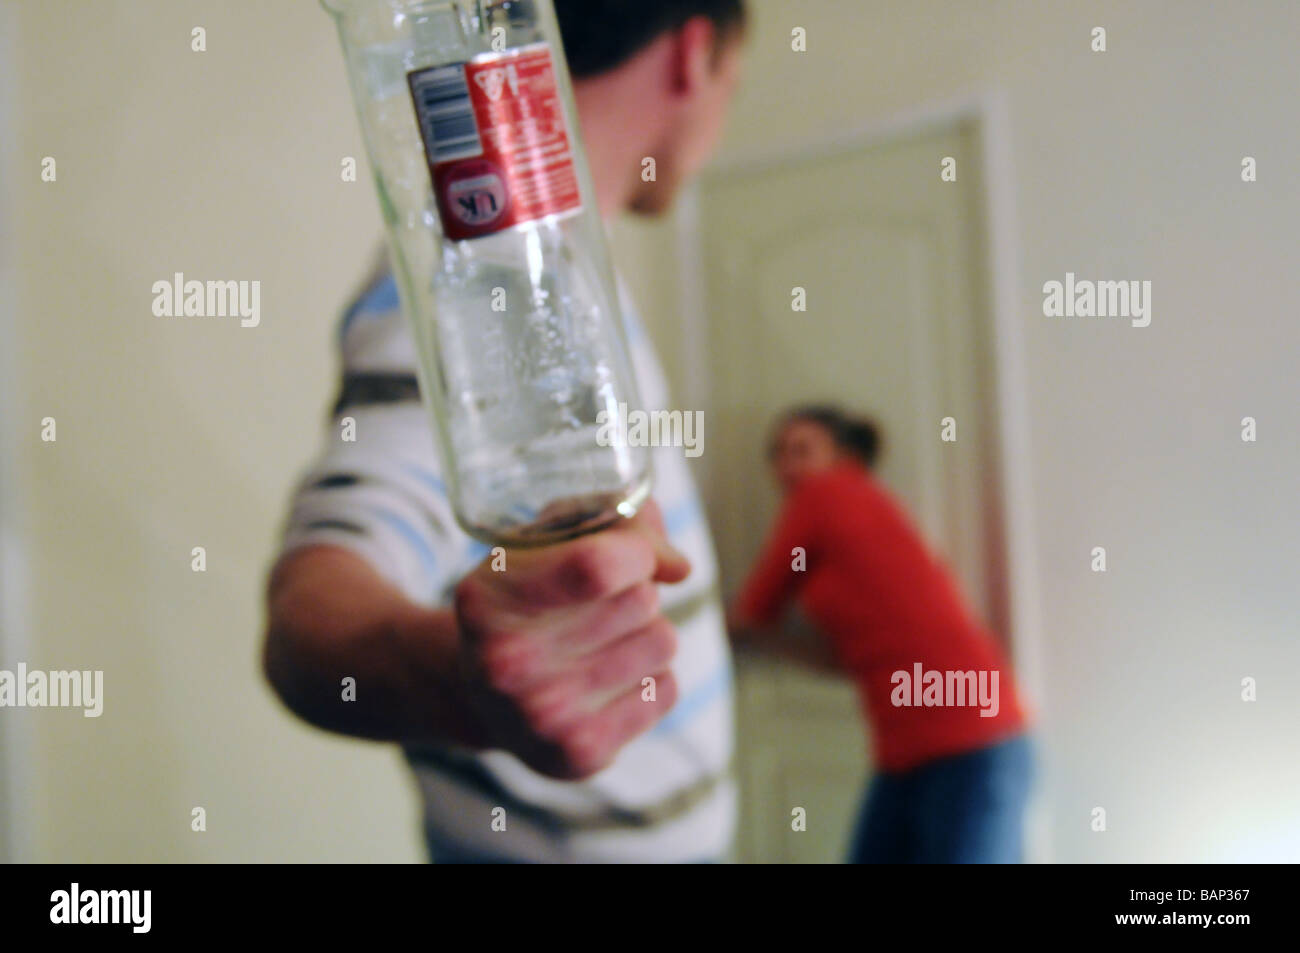 Young male physically abusing a young woman in their twenties with a glass bottle - Stock Image